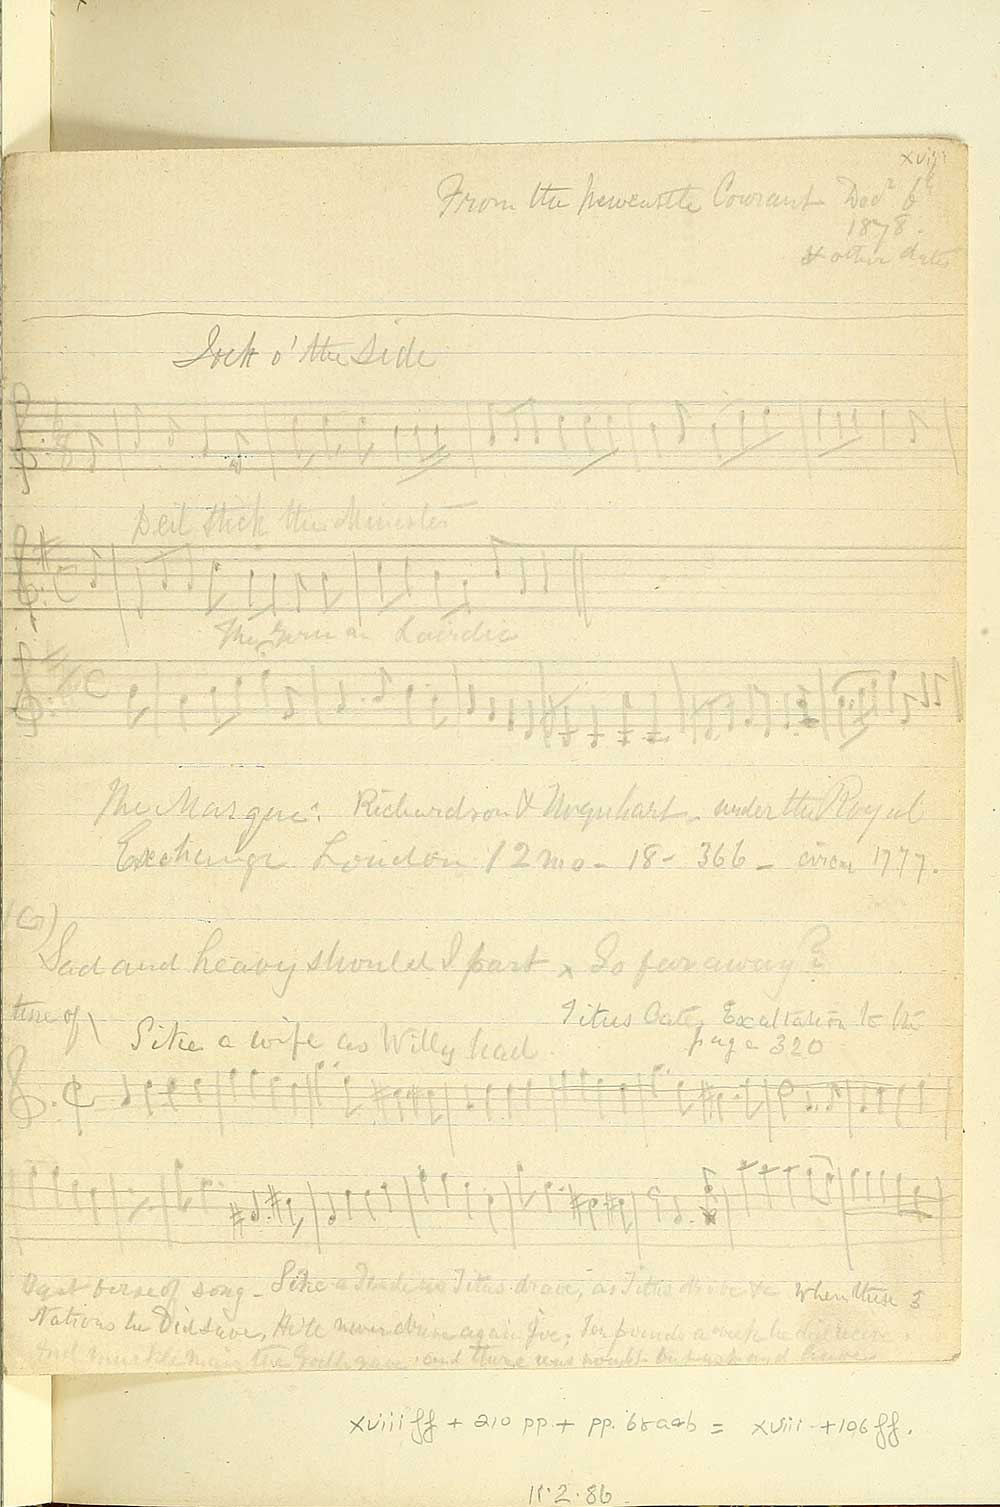 253) [Page 231] - Glen Collection of printed music